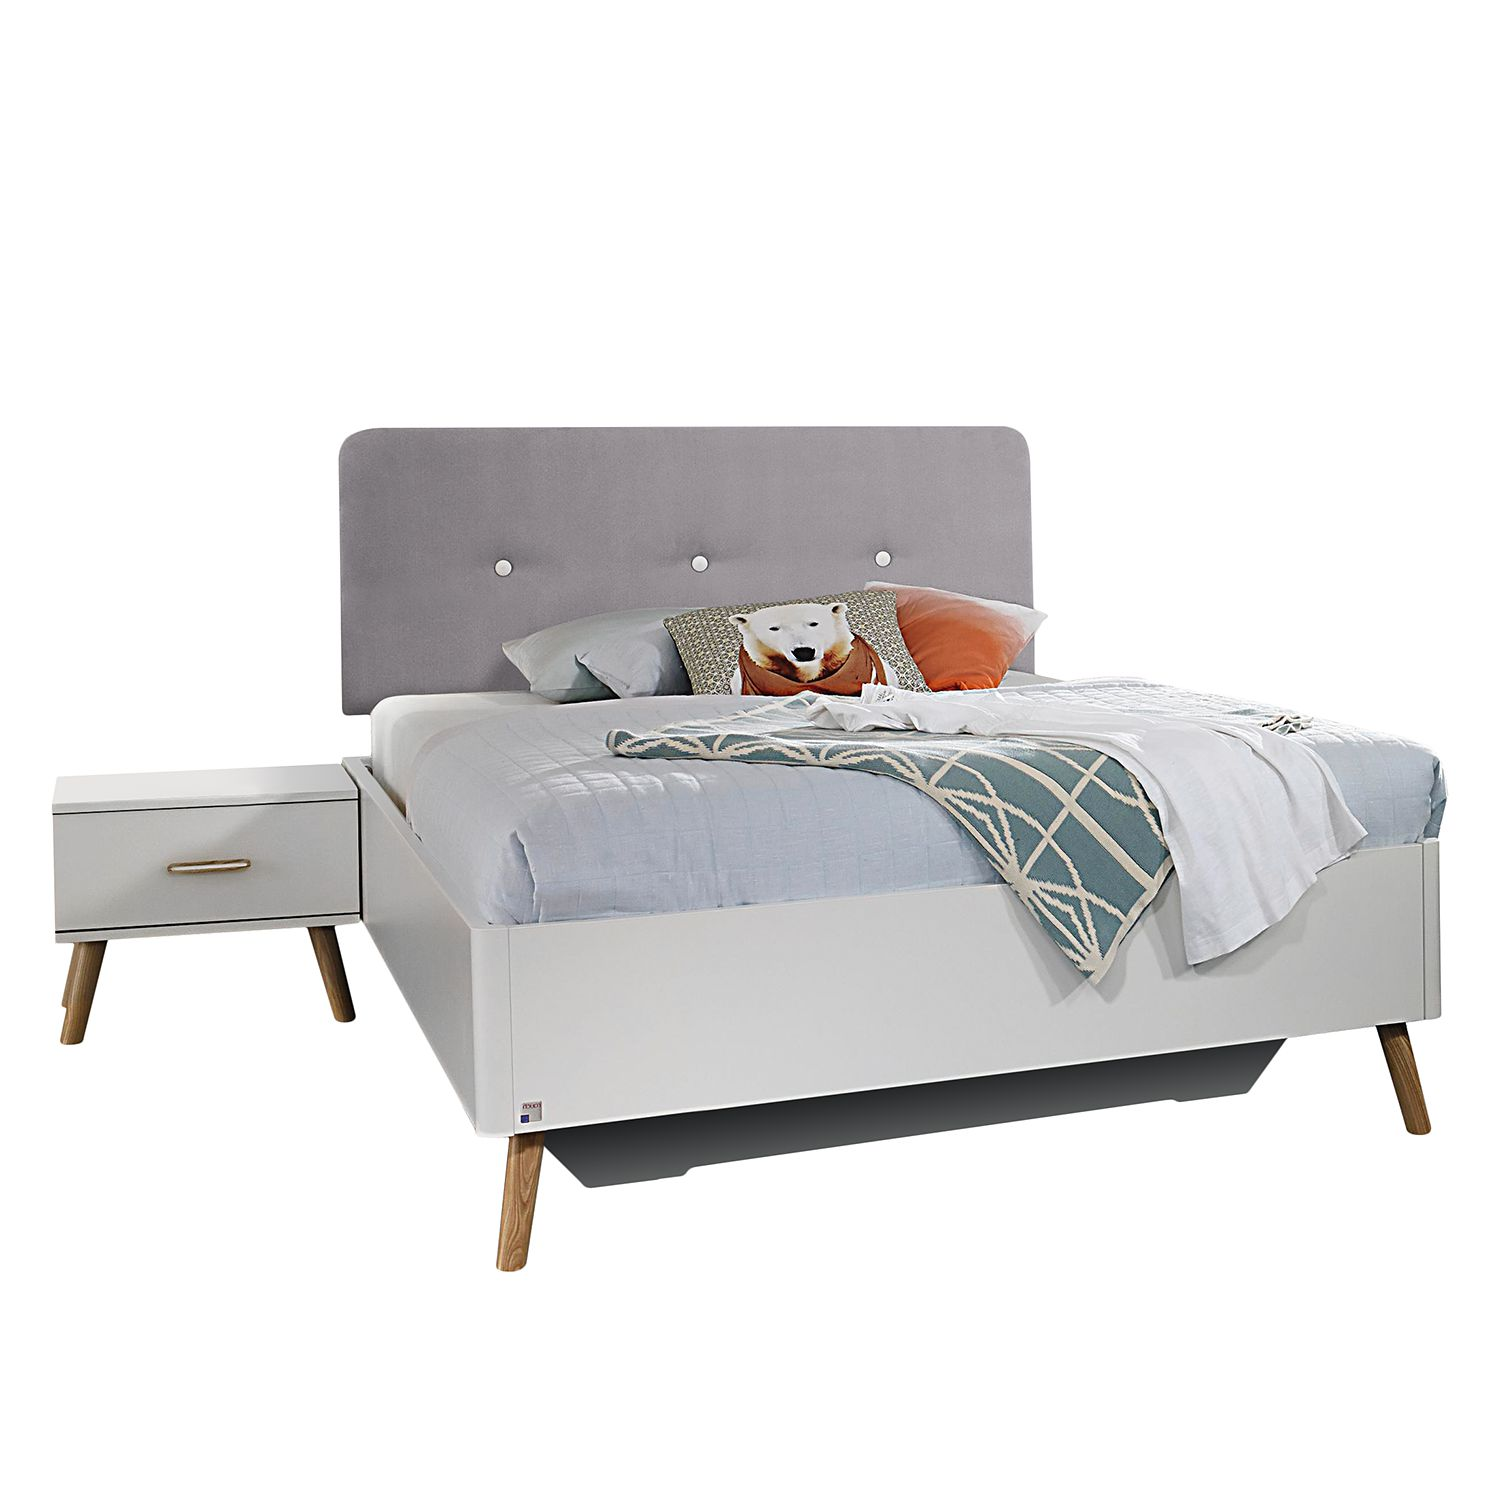 goedkoop Bed Annett wit 120 x 200cm Rauch Packs